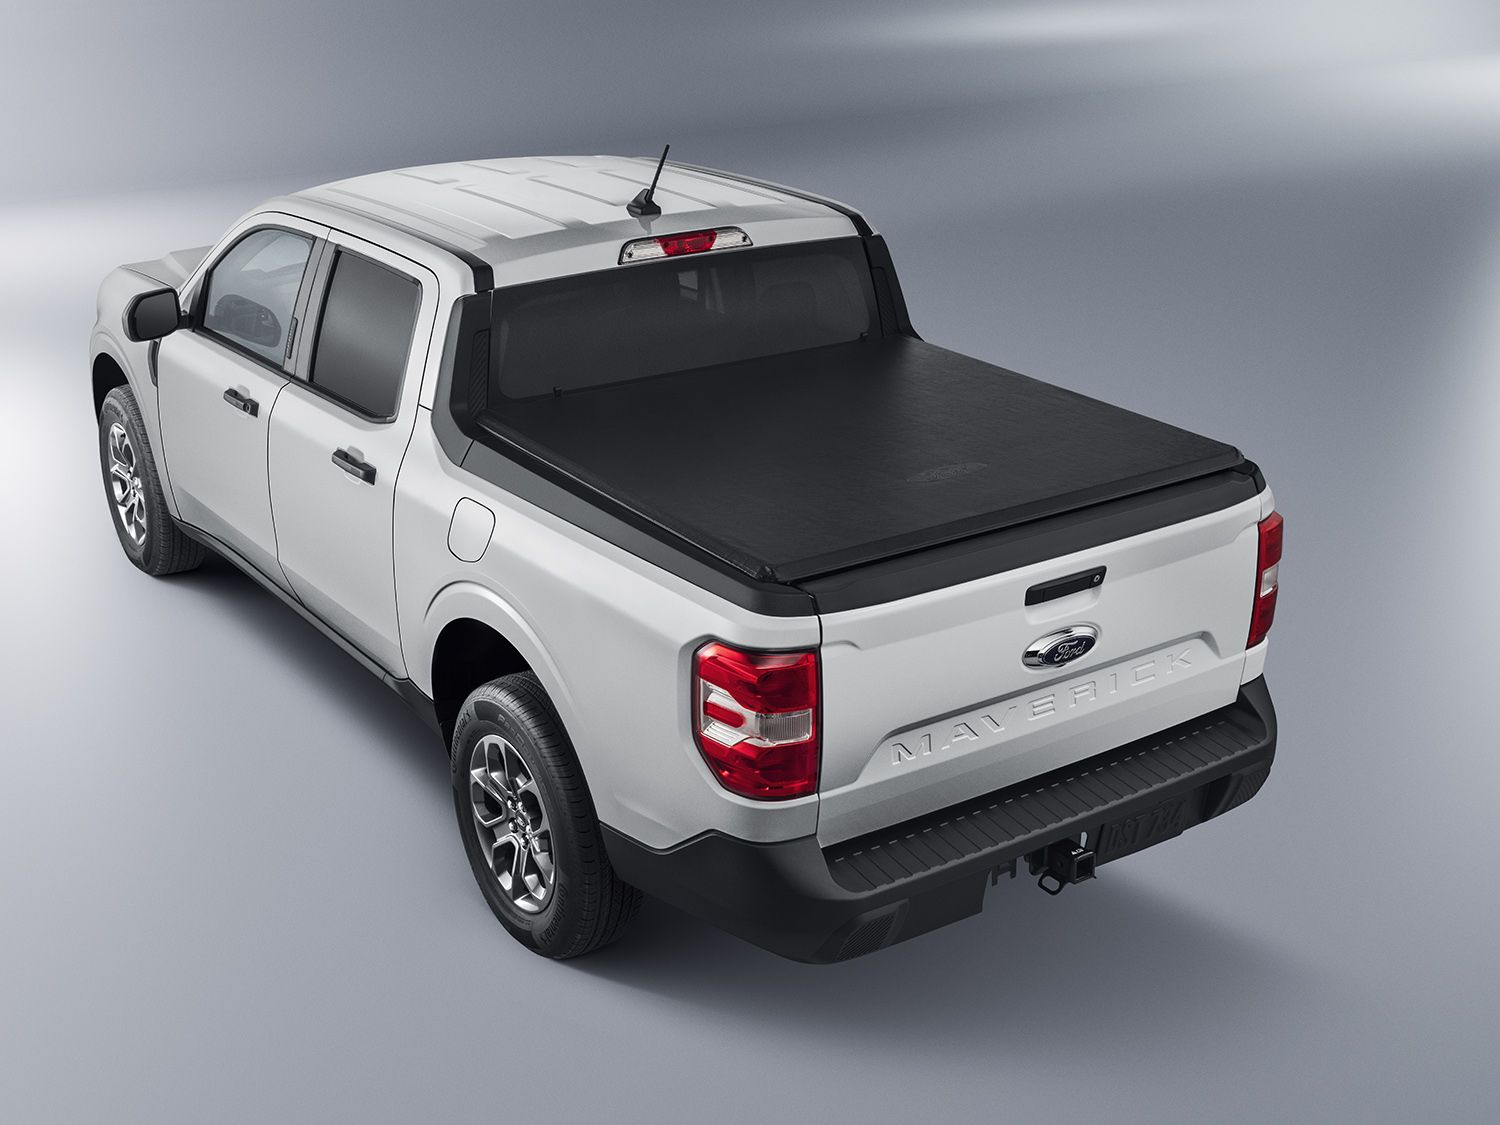 2022 ford maverick Tonneau : Bed Cover - Soft Folding by Advantage, Over The Rails, 4.5 Bed.jpg